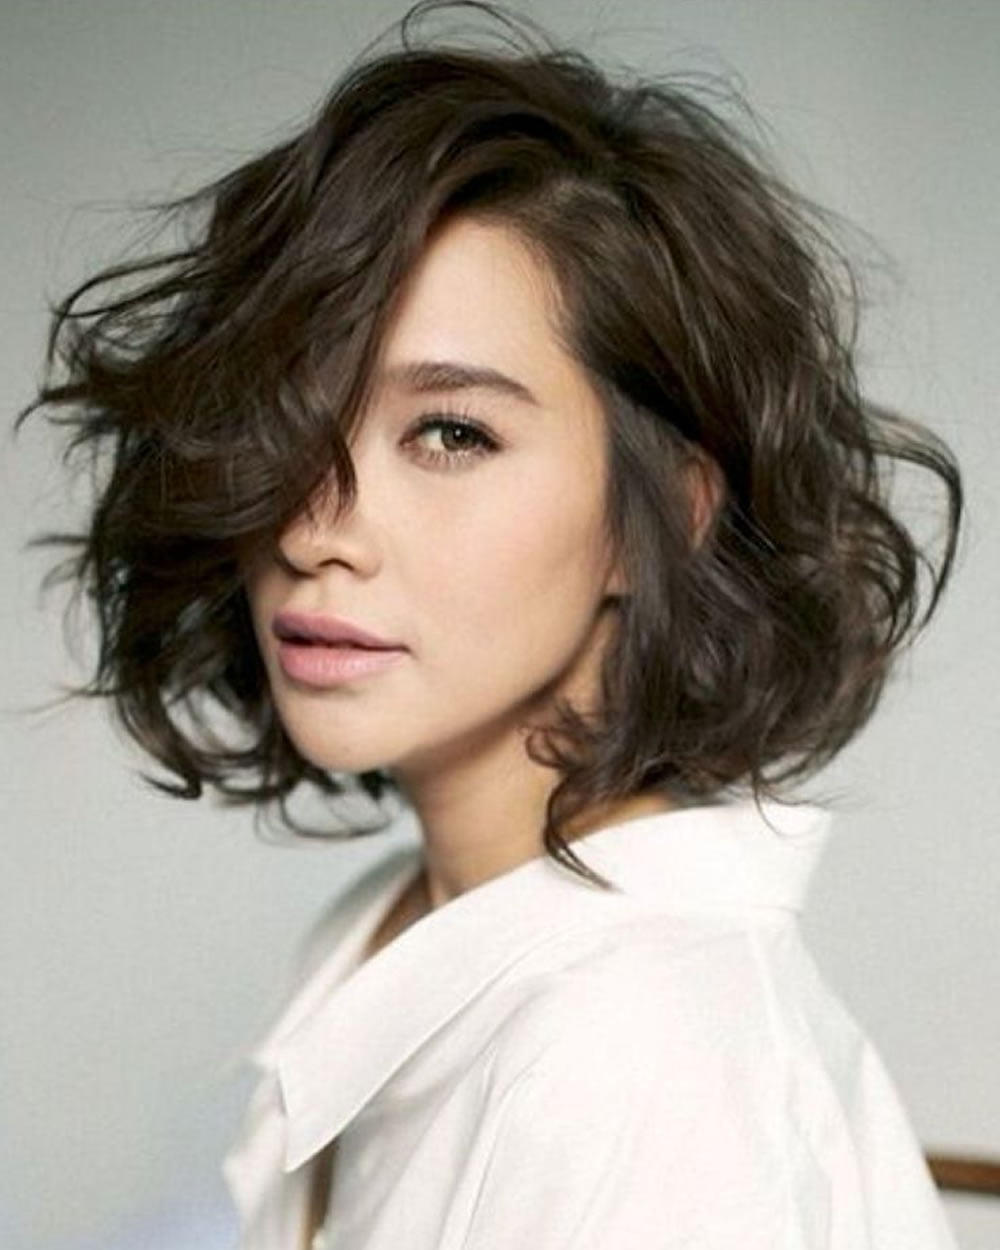 wavy short hairstyles and haircuts with long bangs for 2018-2019